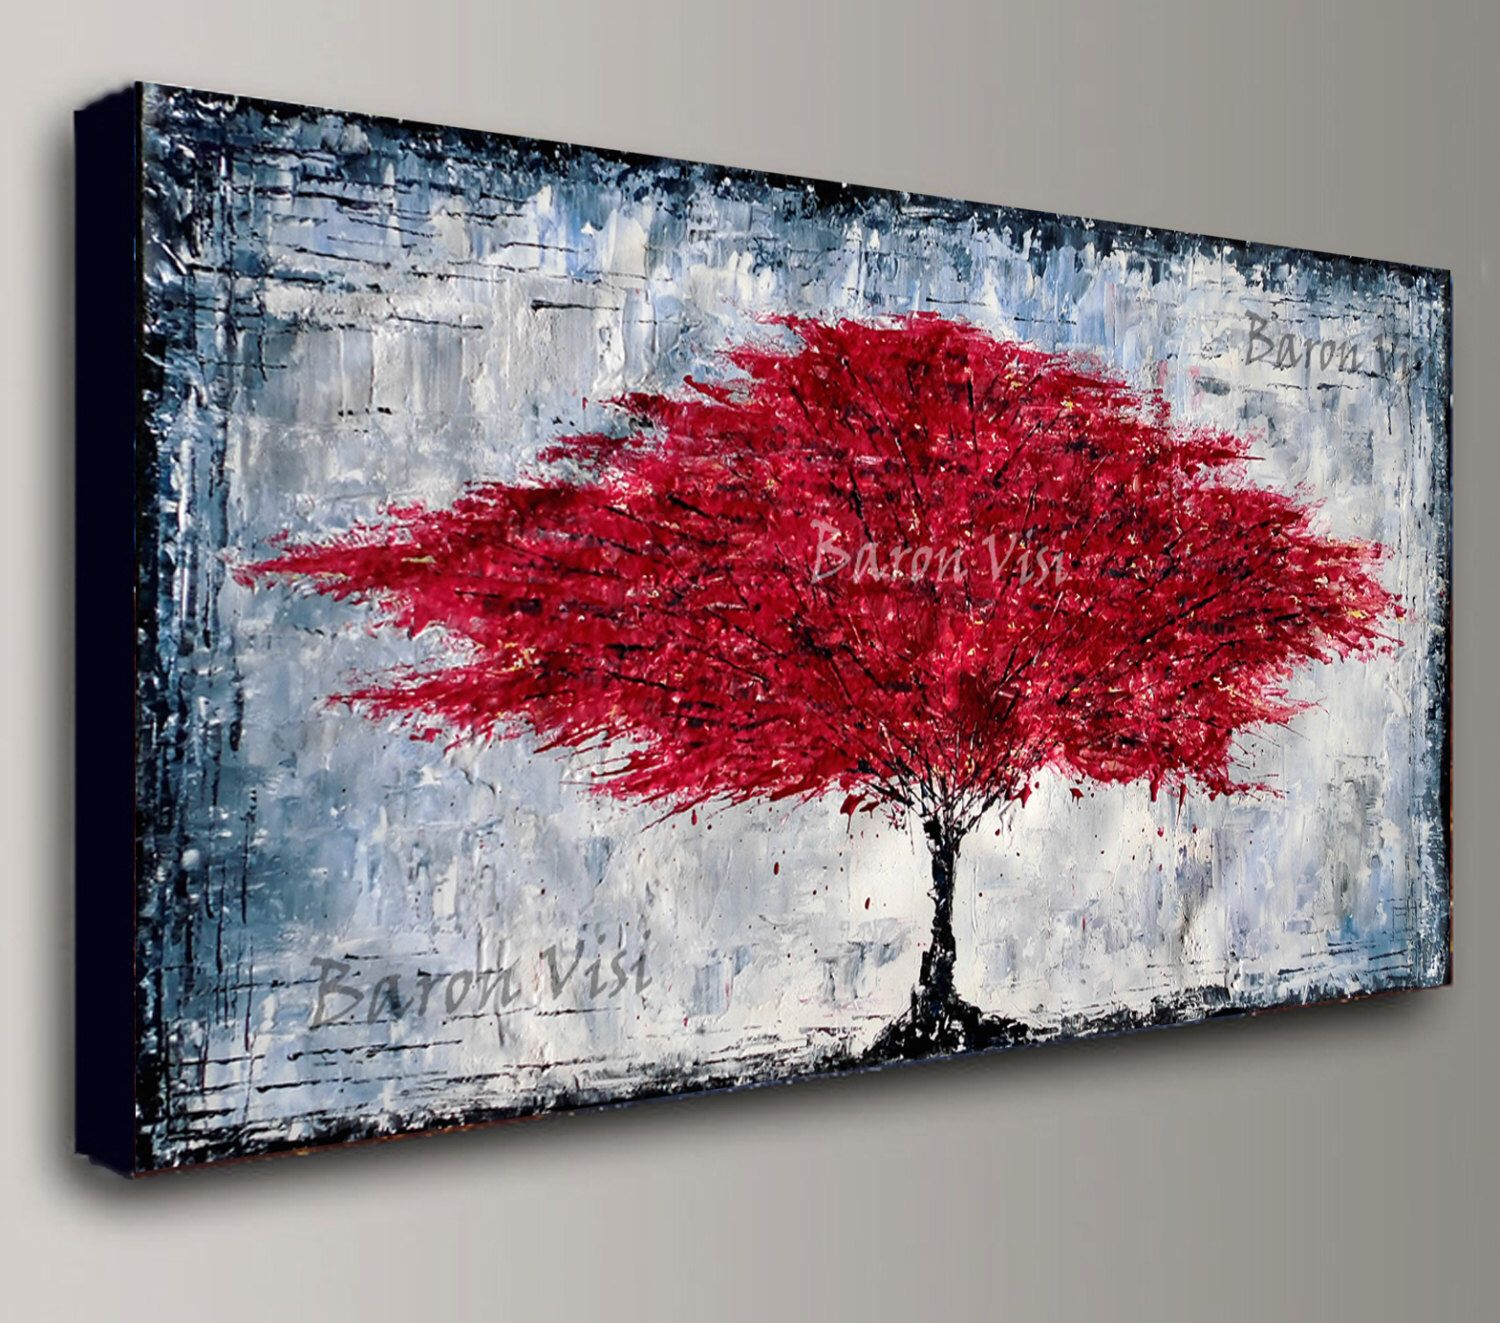 Red Painting Abstract Painting Acrylic Painting Art Painting Large Canvas  Art Red Wall Home Office Interior Decor Modern Blue Red Grey Visi By  Baronvisi On ...